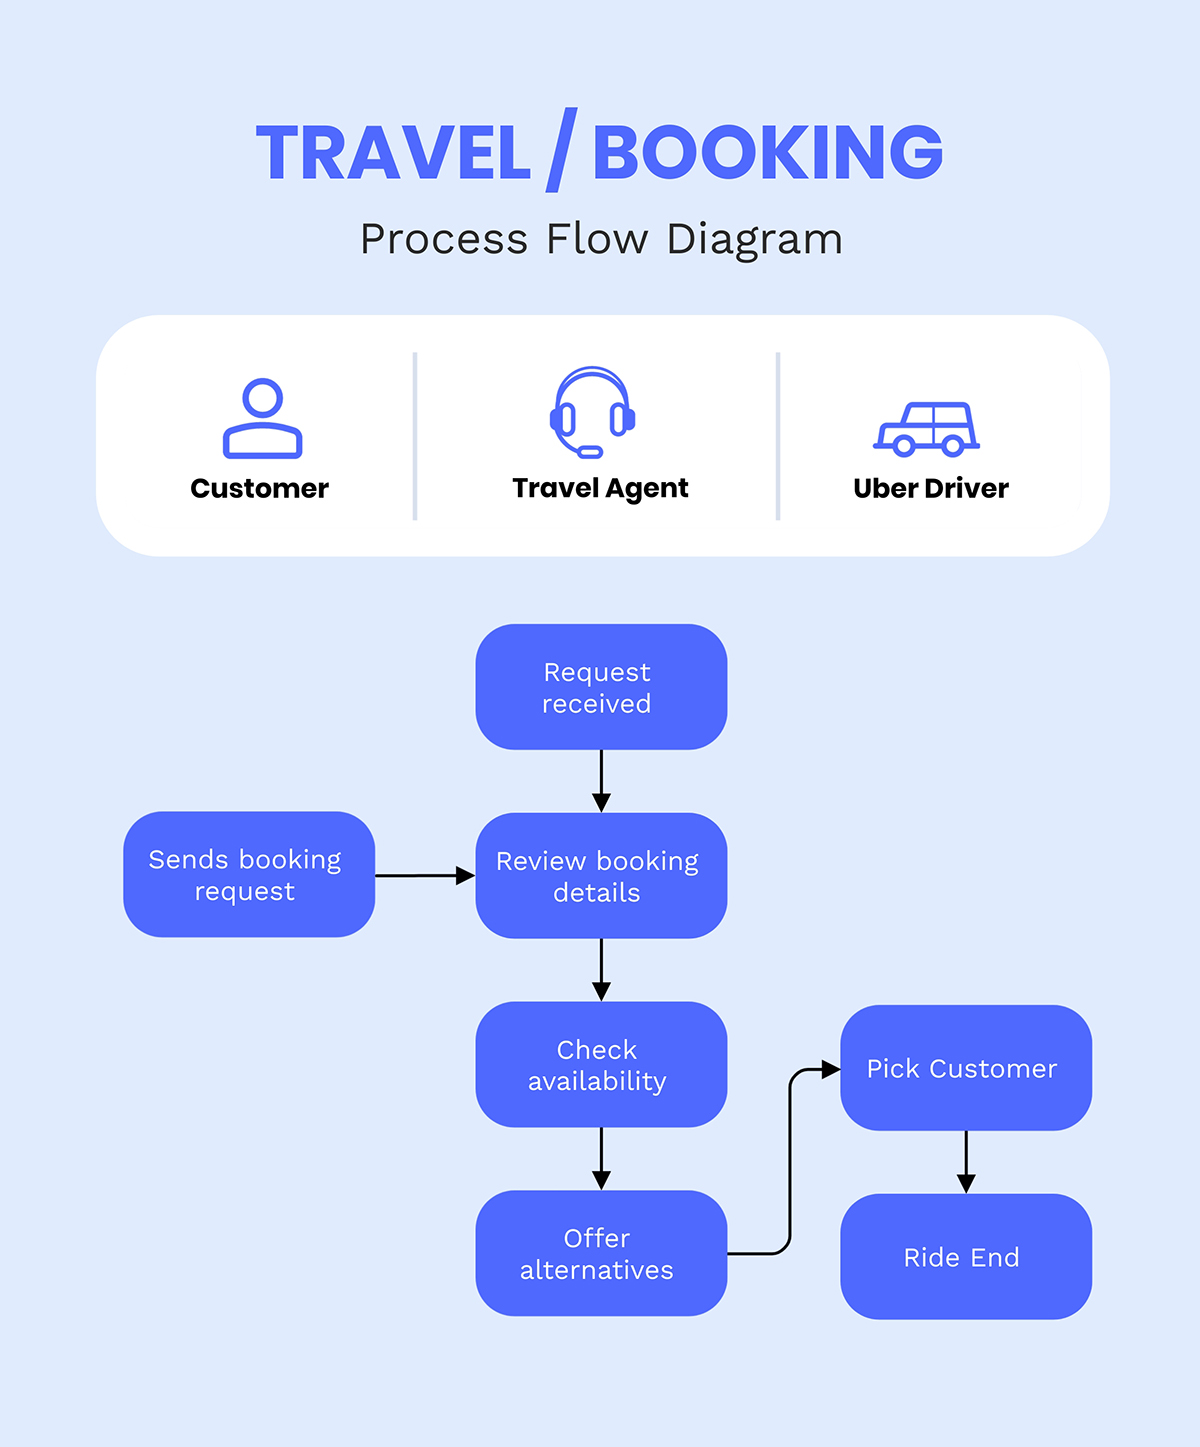 A travel/booking process flowchart template available in Visme.